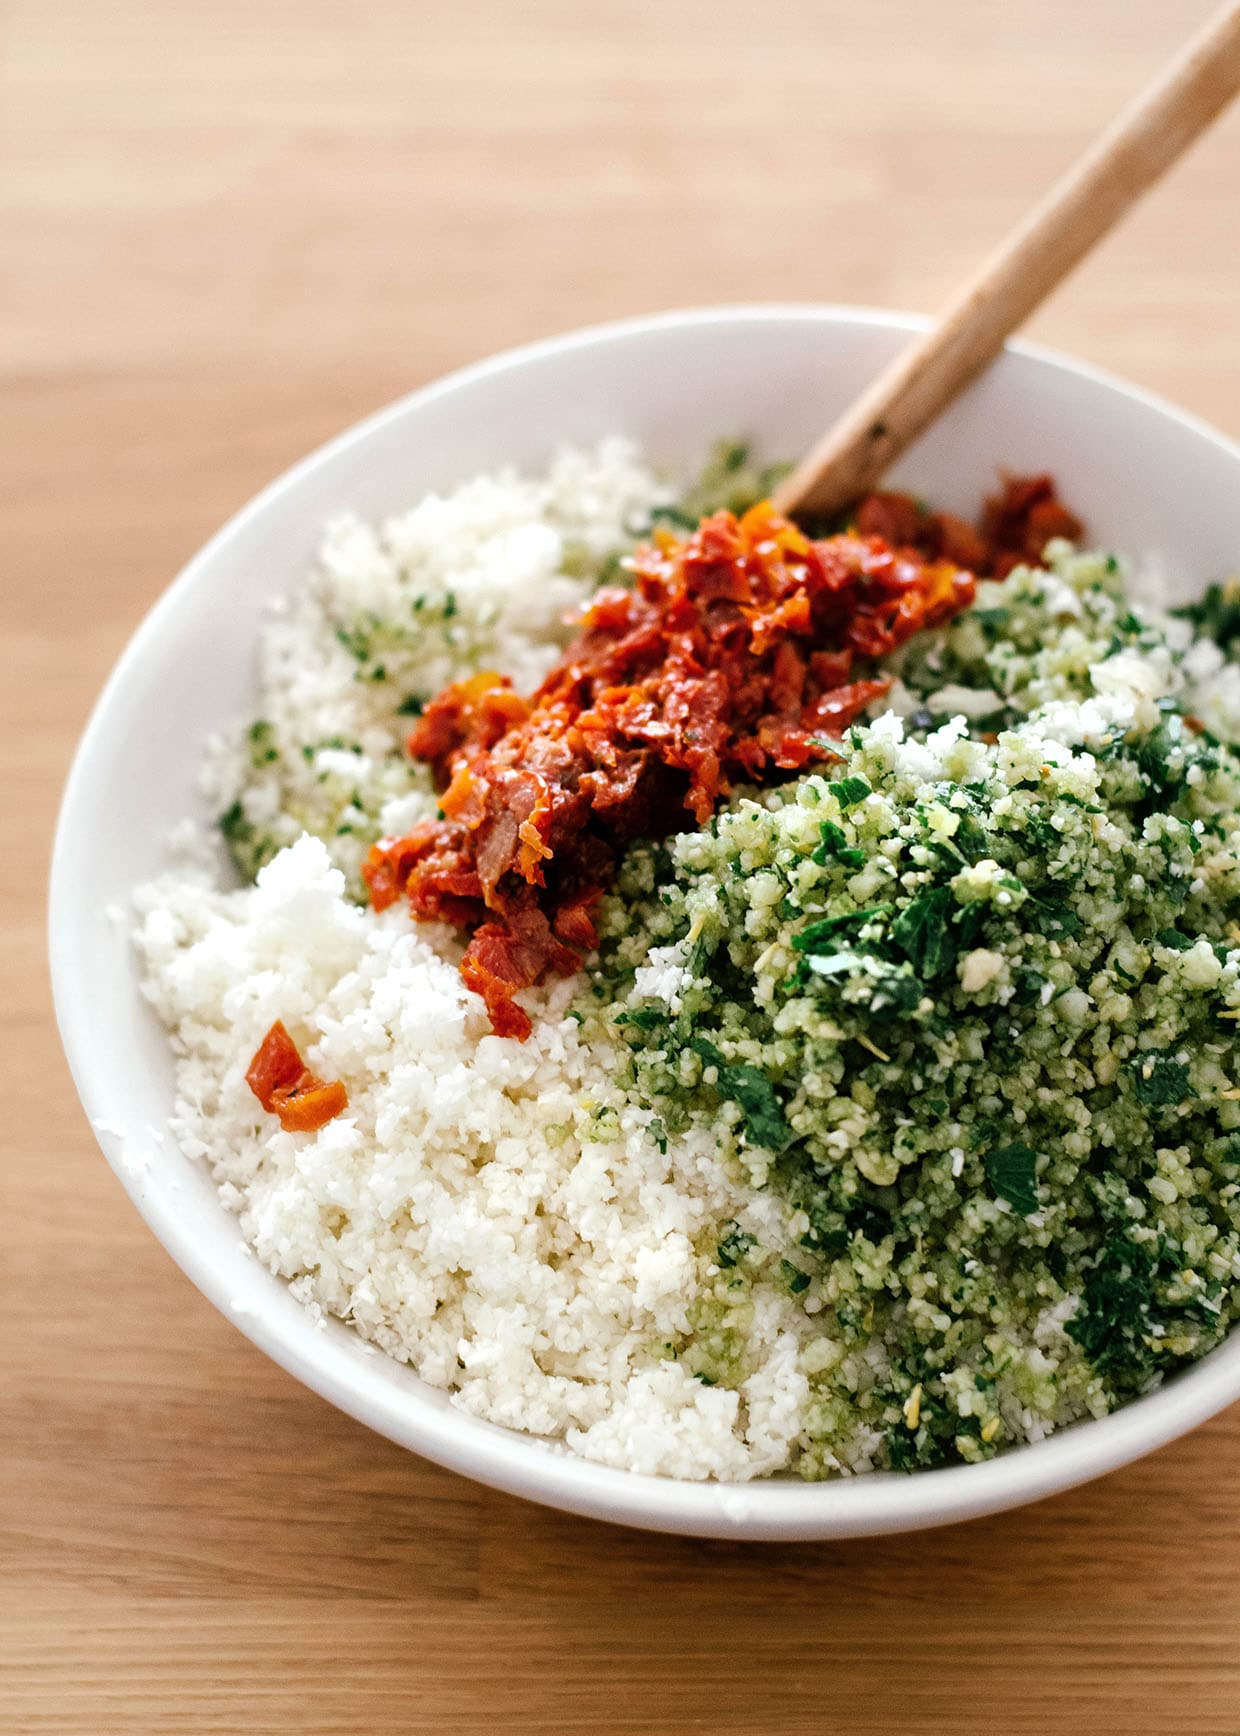 riced cauliflower with herbs and sun dried tomatoes